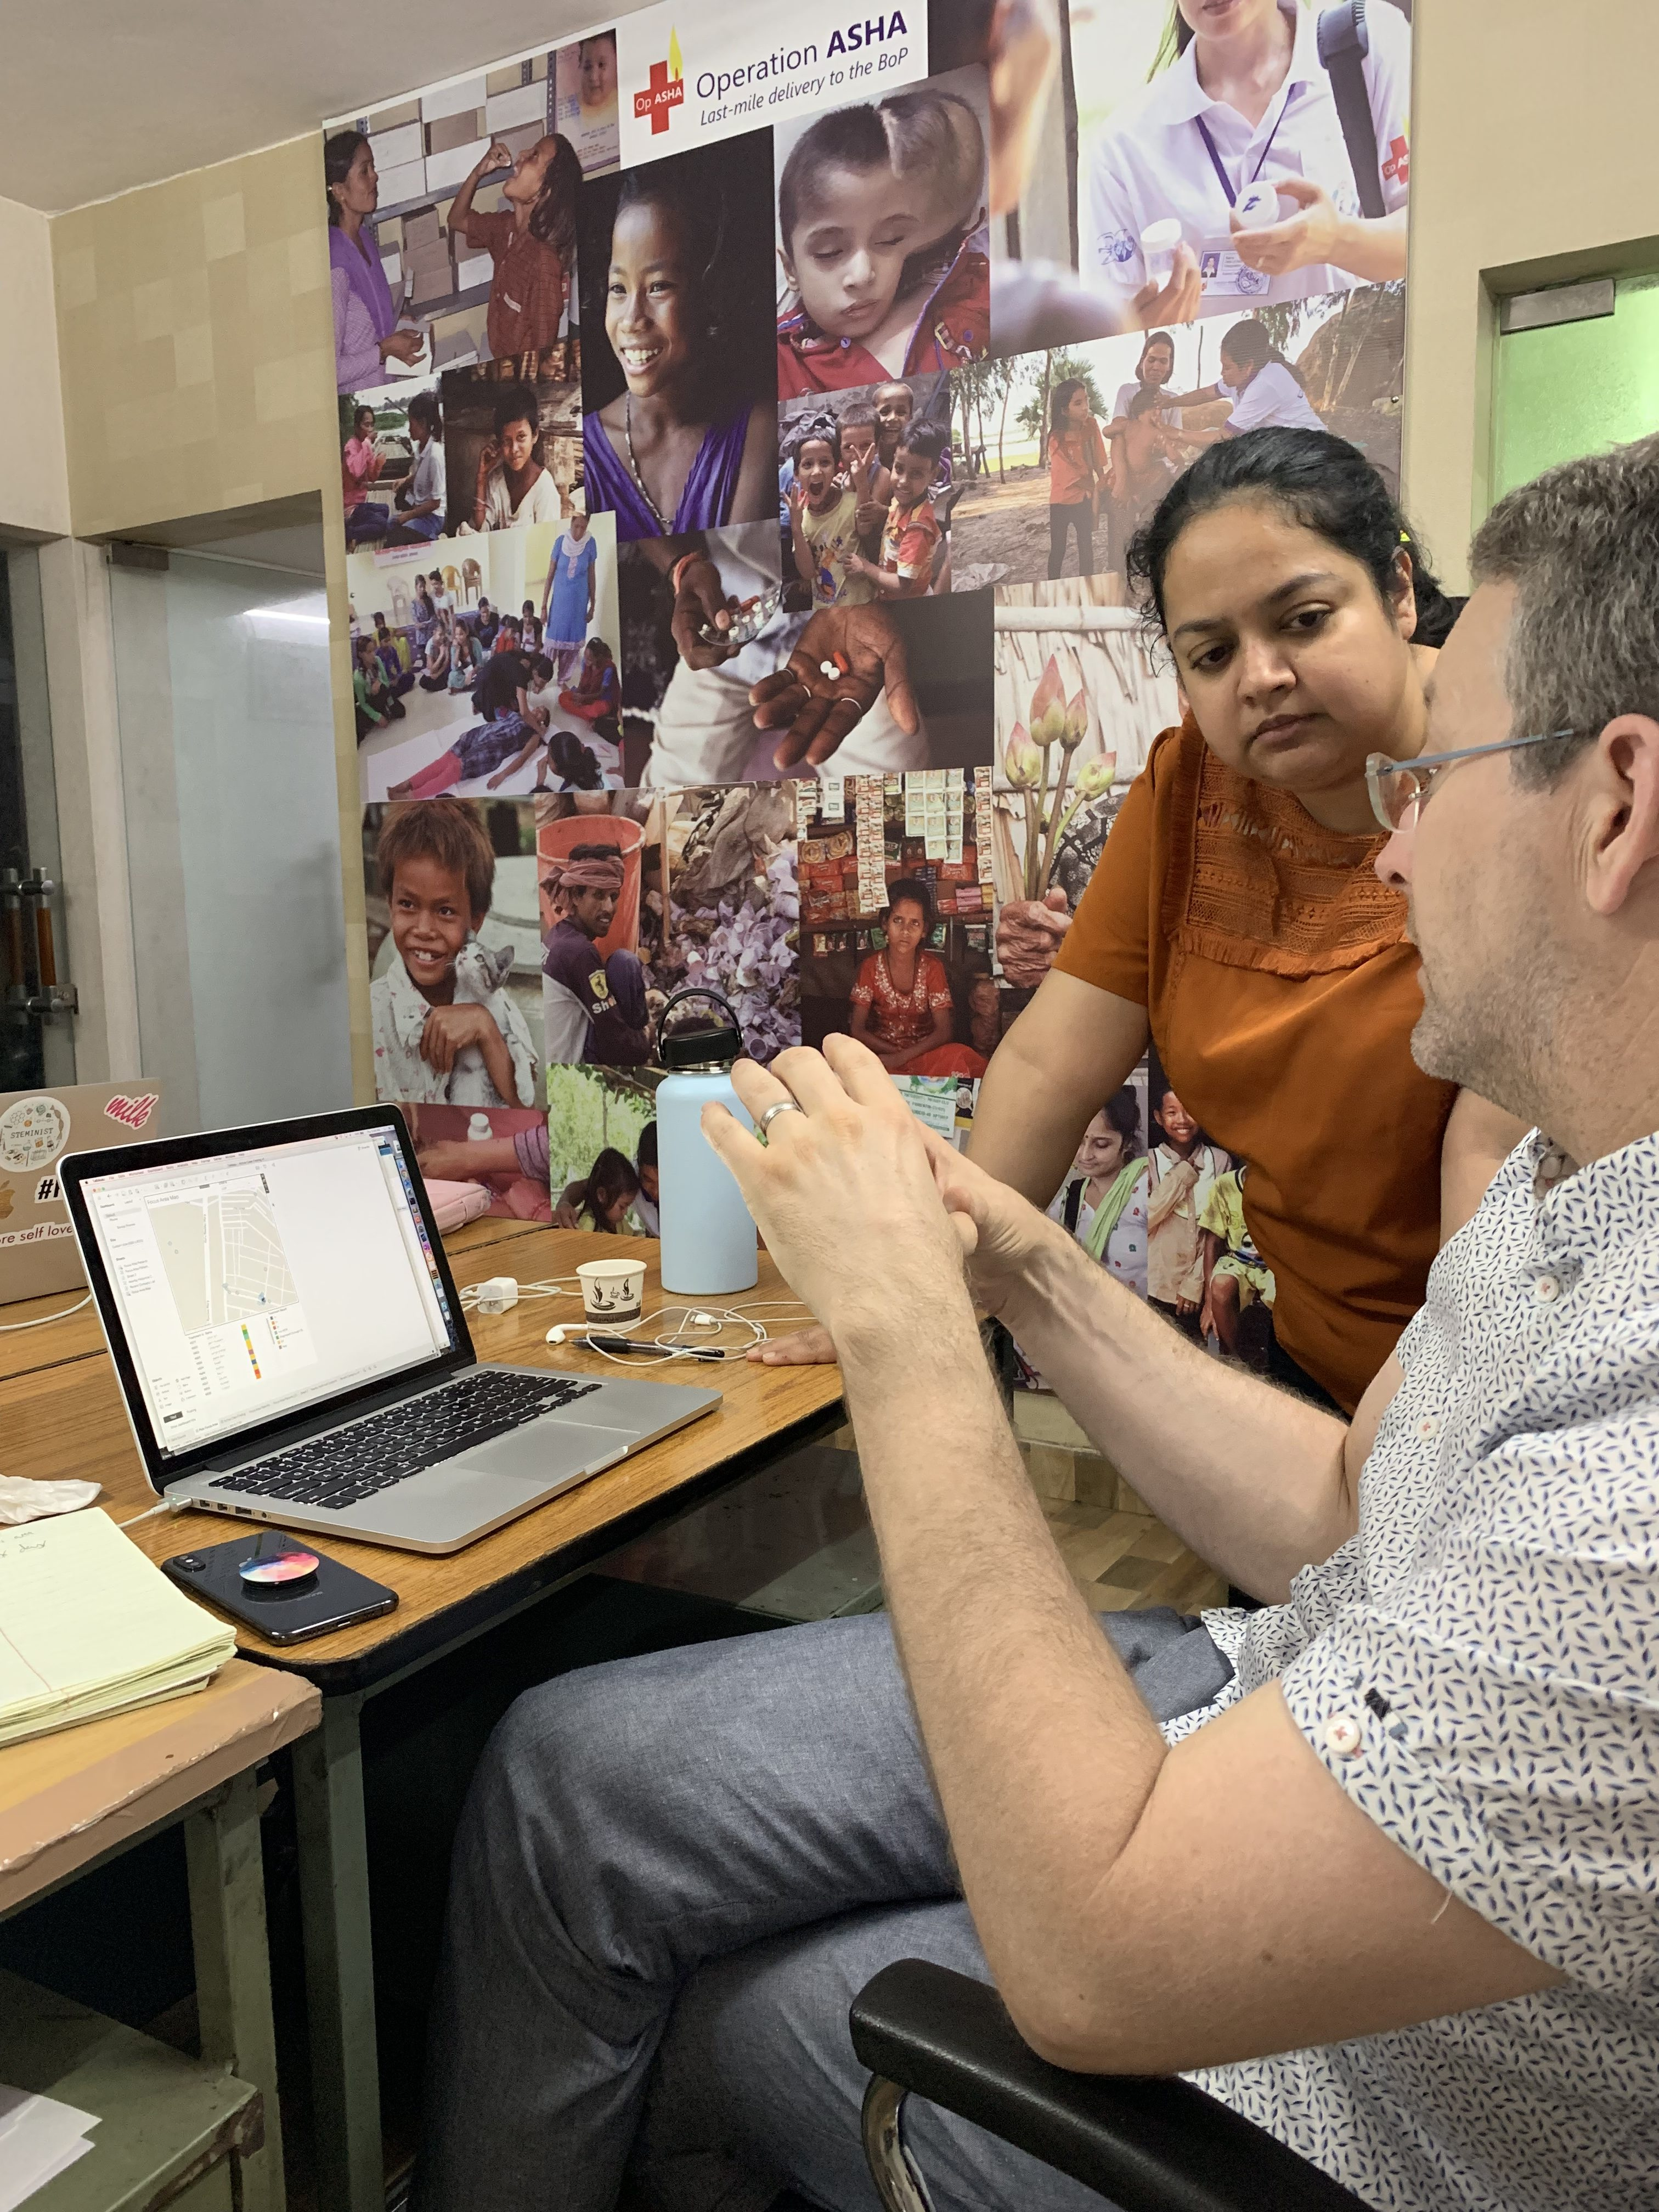 Tableau volunteer Michael and Operation ASHA staff looking at a computer discussing data modeling options